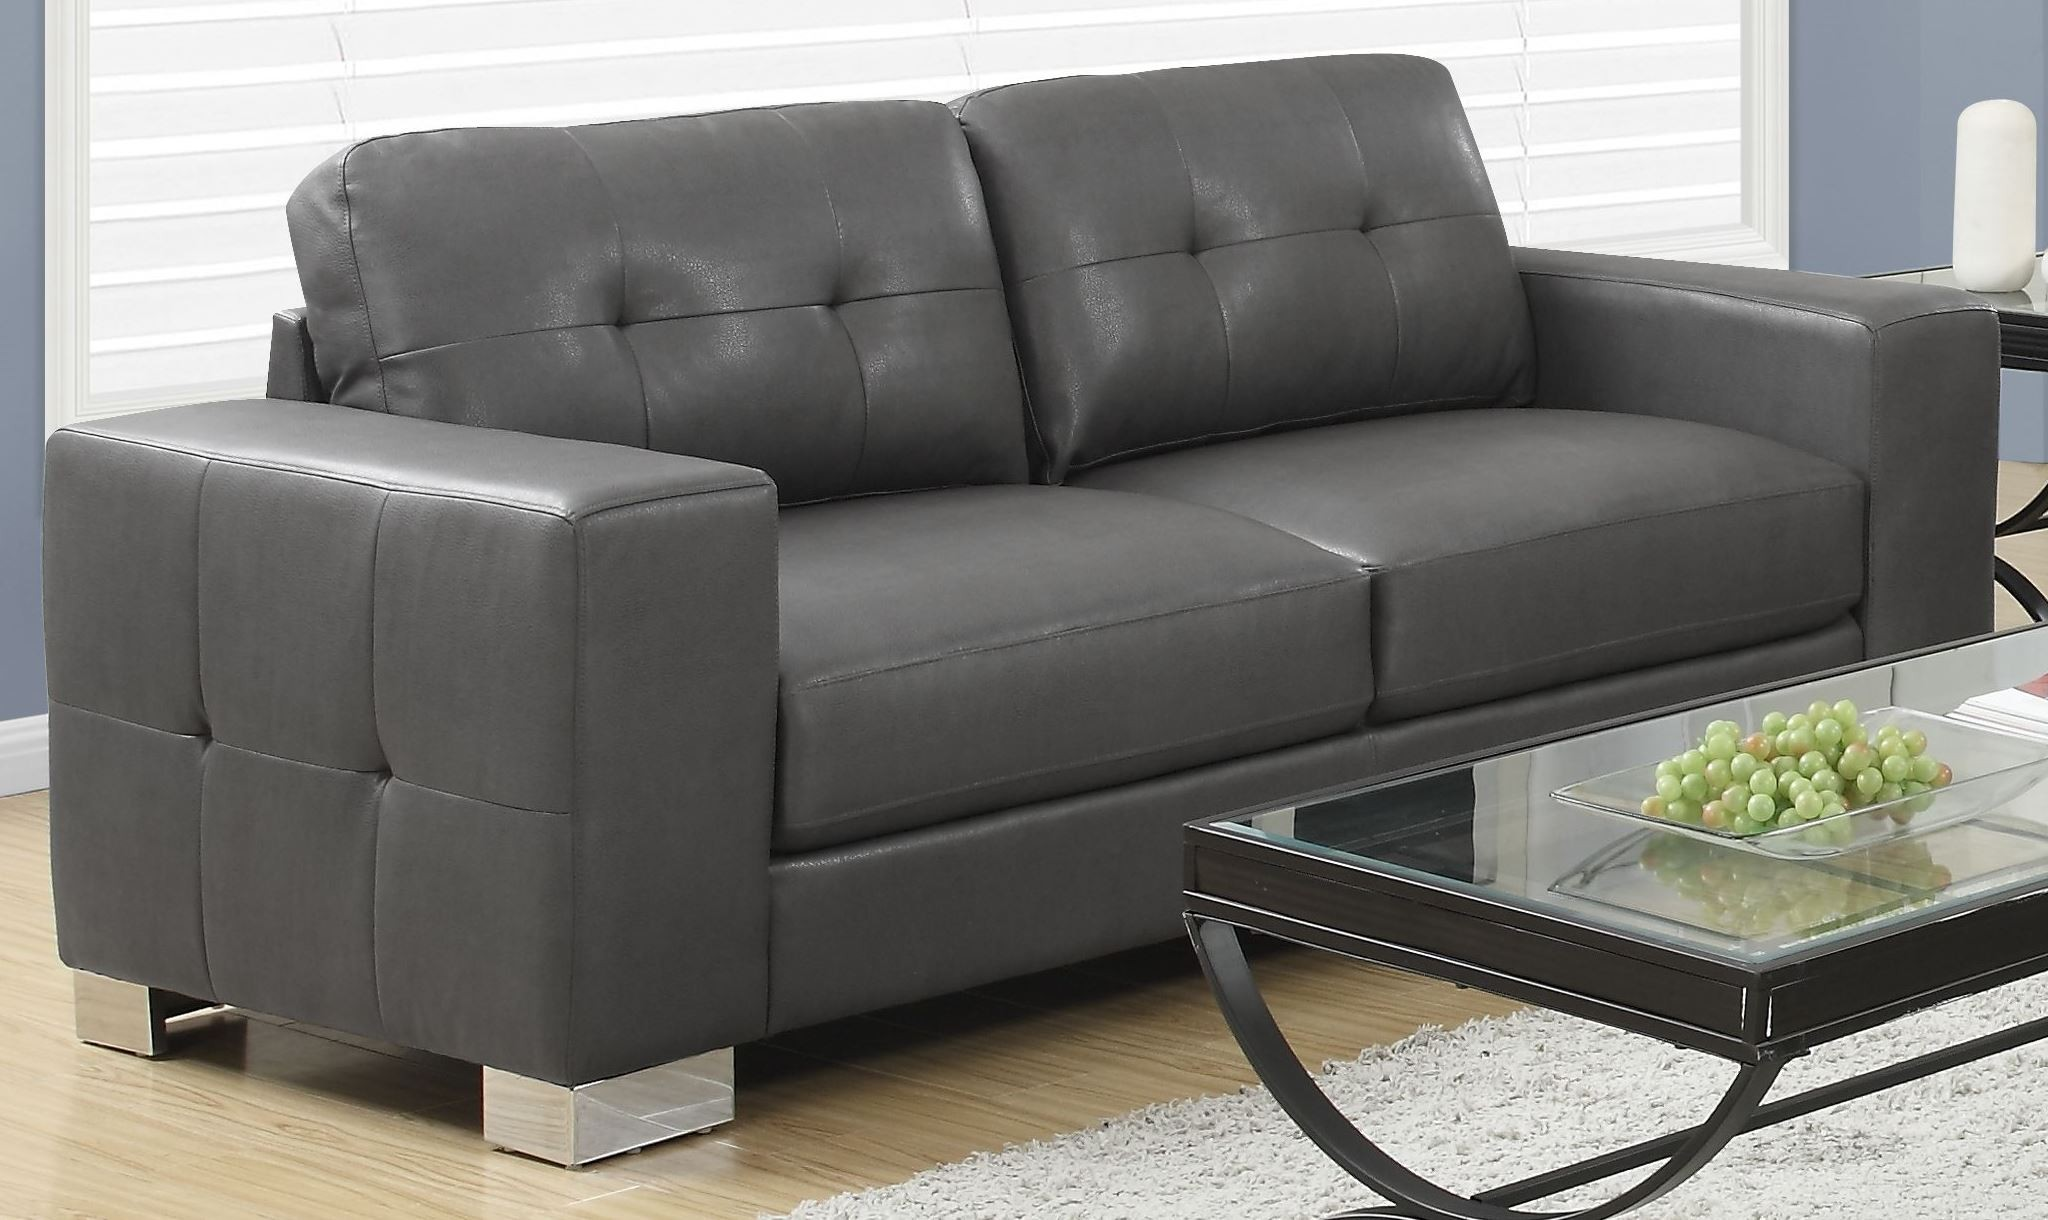 8223gy Charcoal Gray Bonded Leather Sofa From Monarch Coleman Furniture